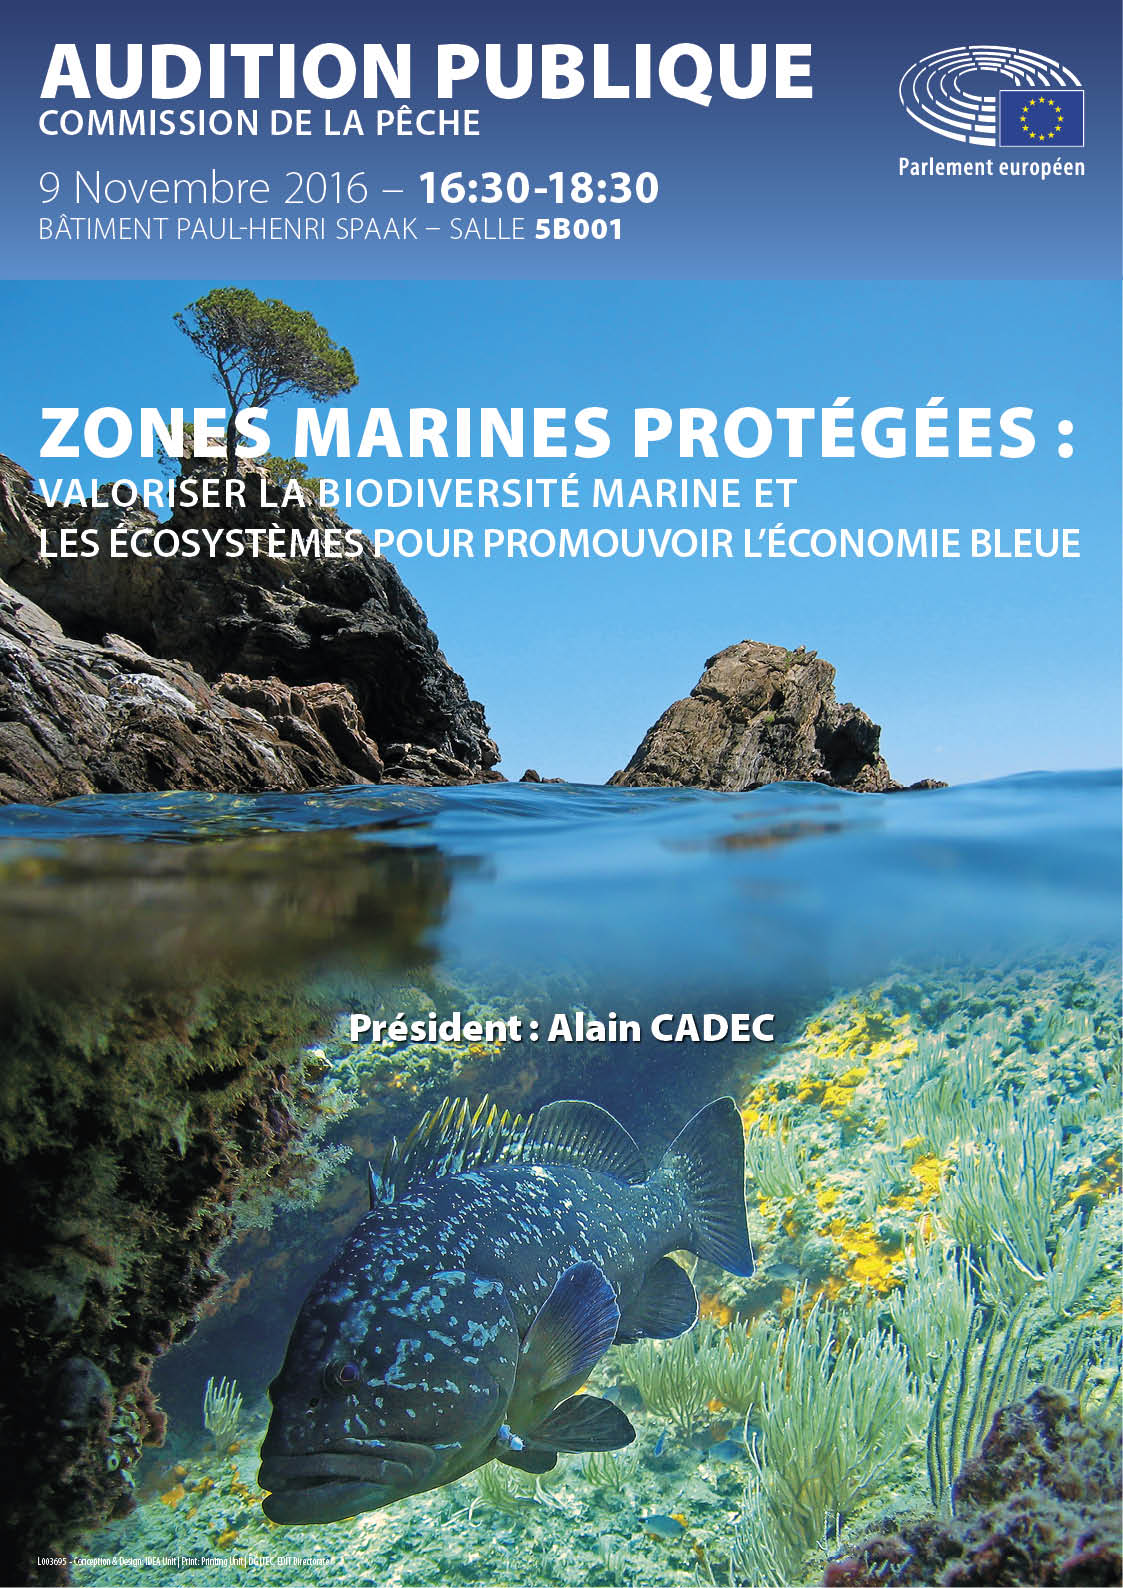 Poster for public hearing on Marine protected areas in FR